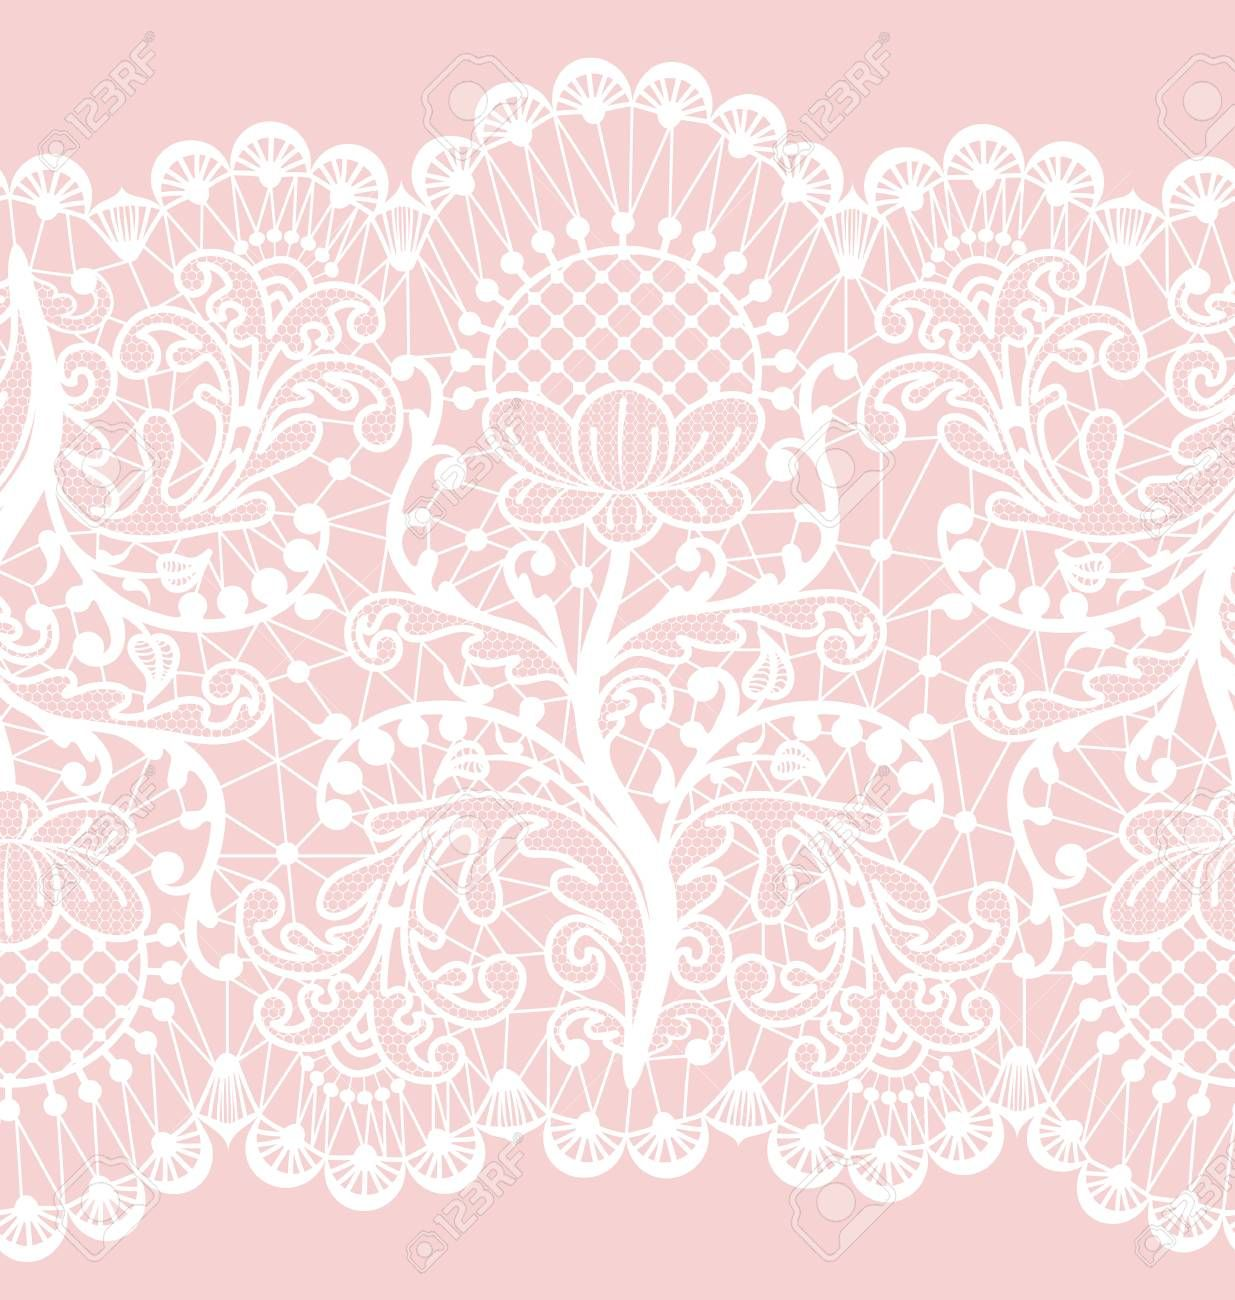 Horizontally Seamless Pink Lace Background With Floral Pattern